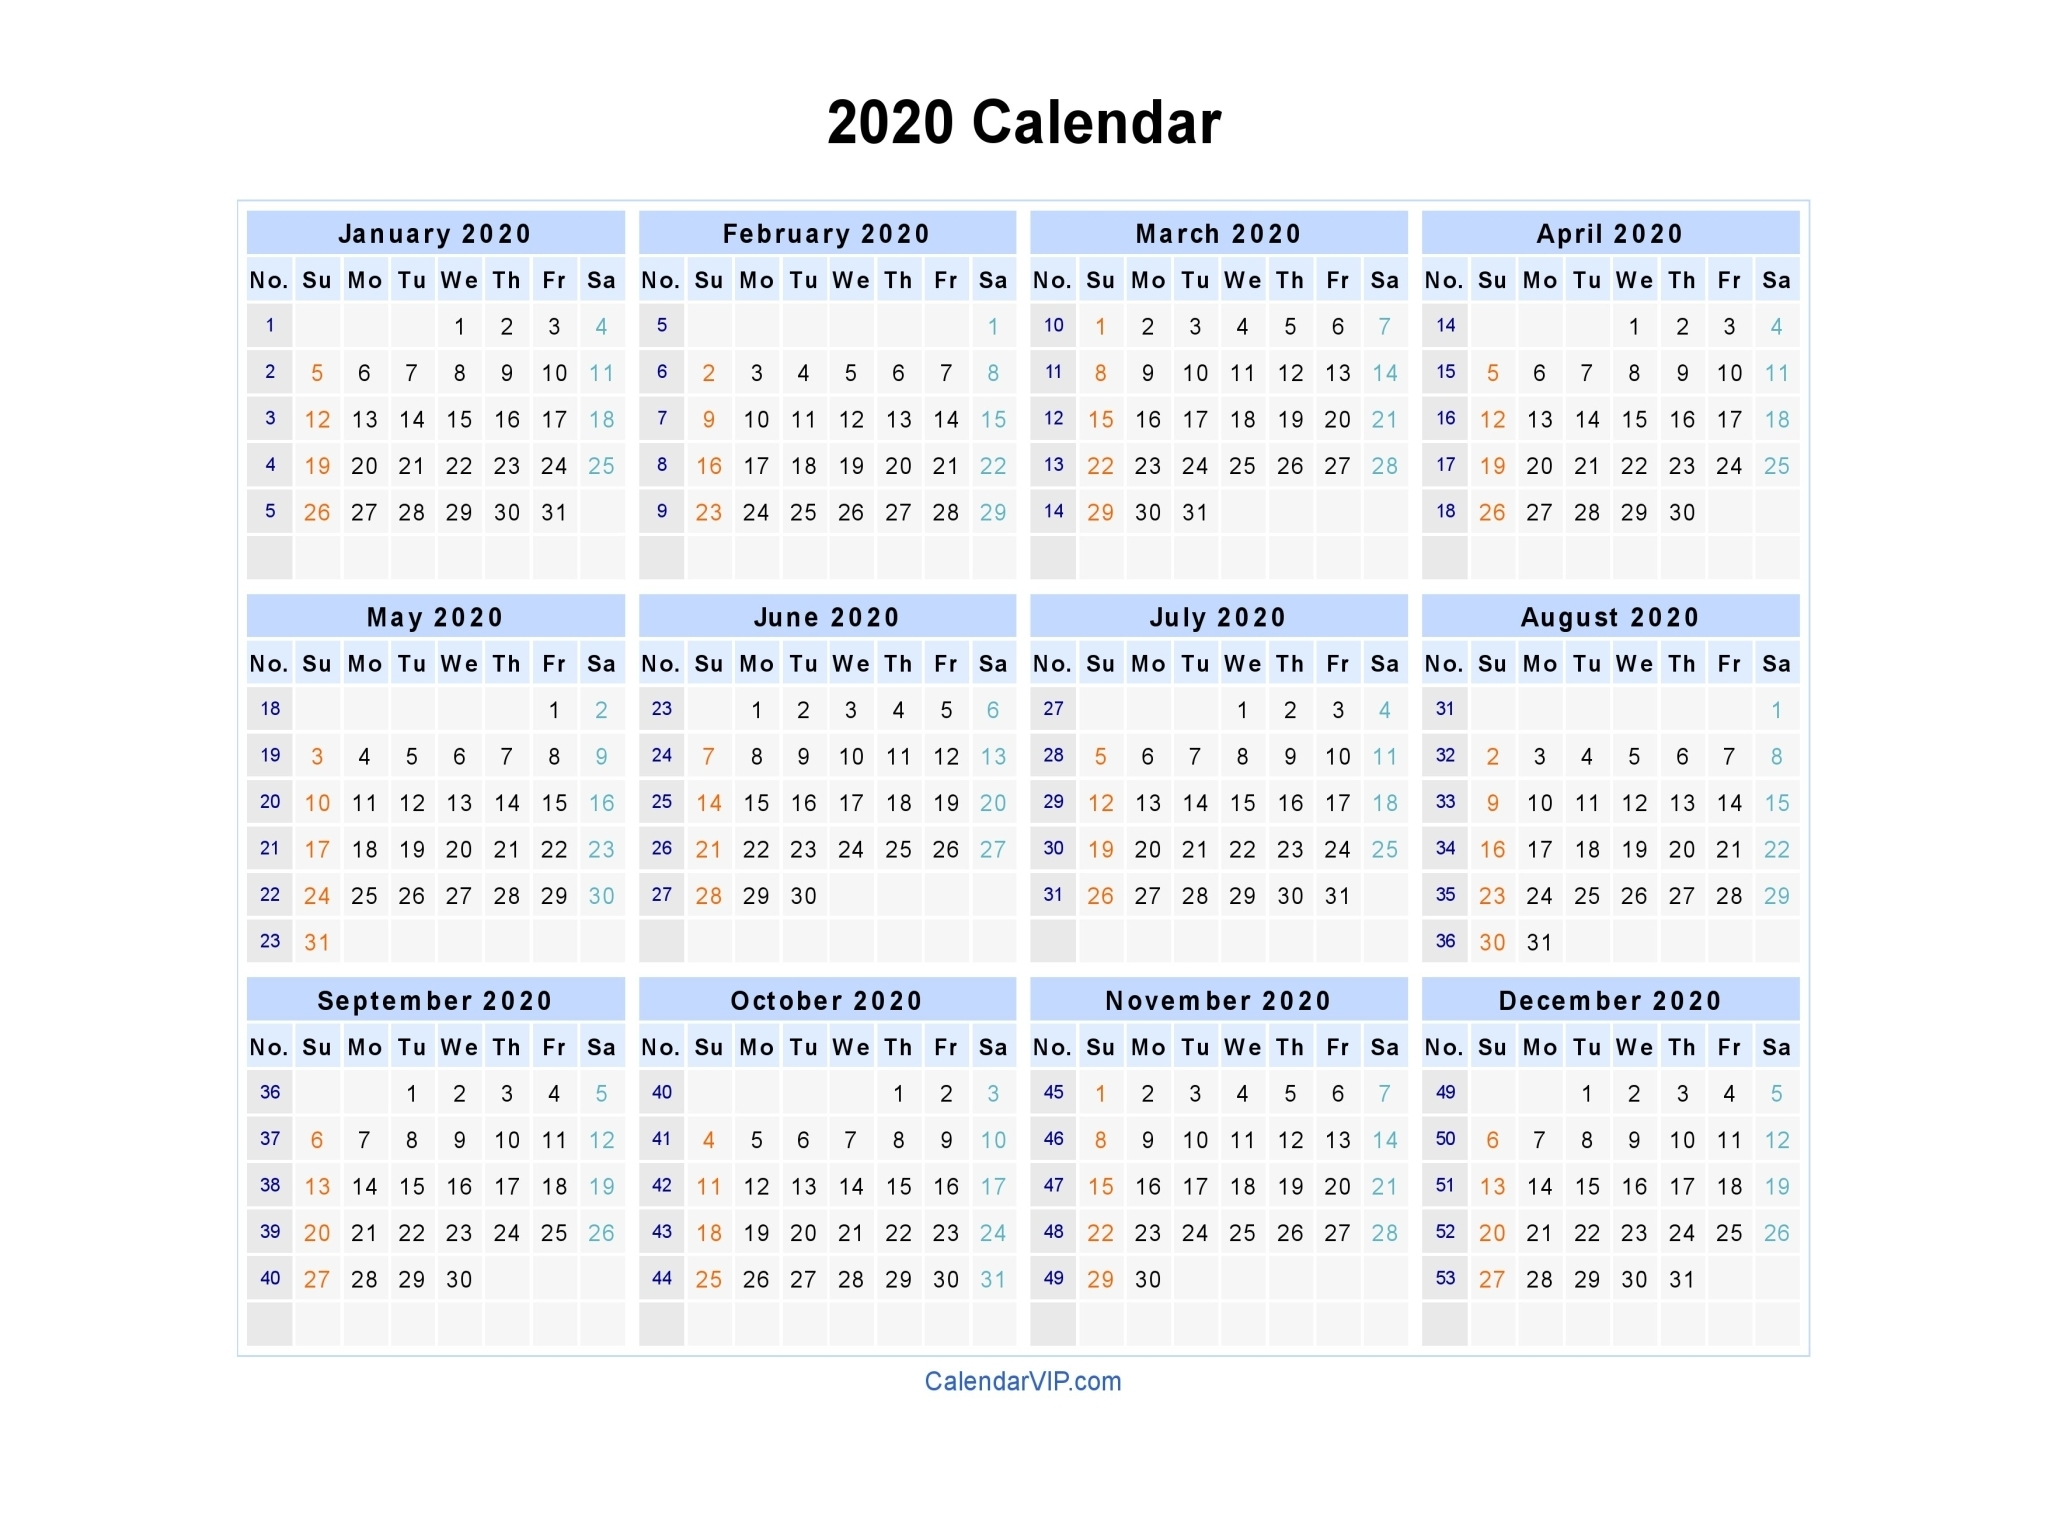 2020 Calendar - Blank Printable Calendar Template In Pdf Word Excel throughout Free Printable Calendar For 2020 With No Download